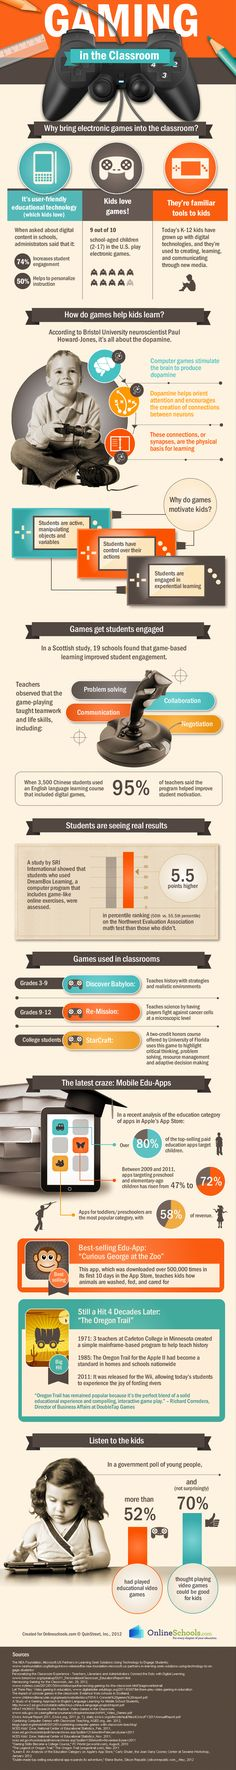 Gaming in the classroom!